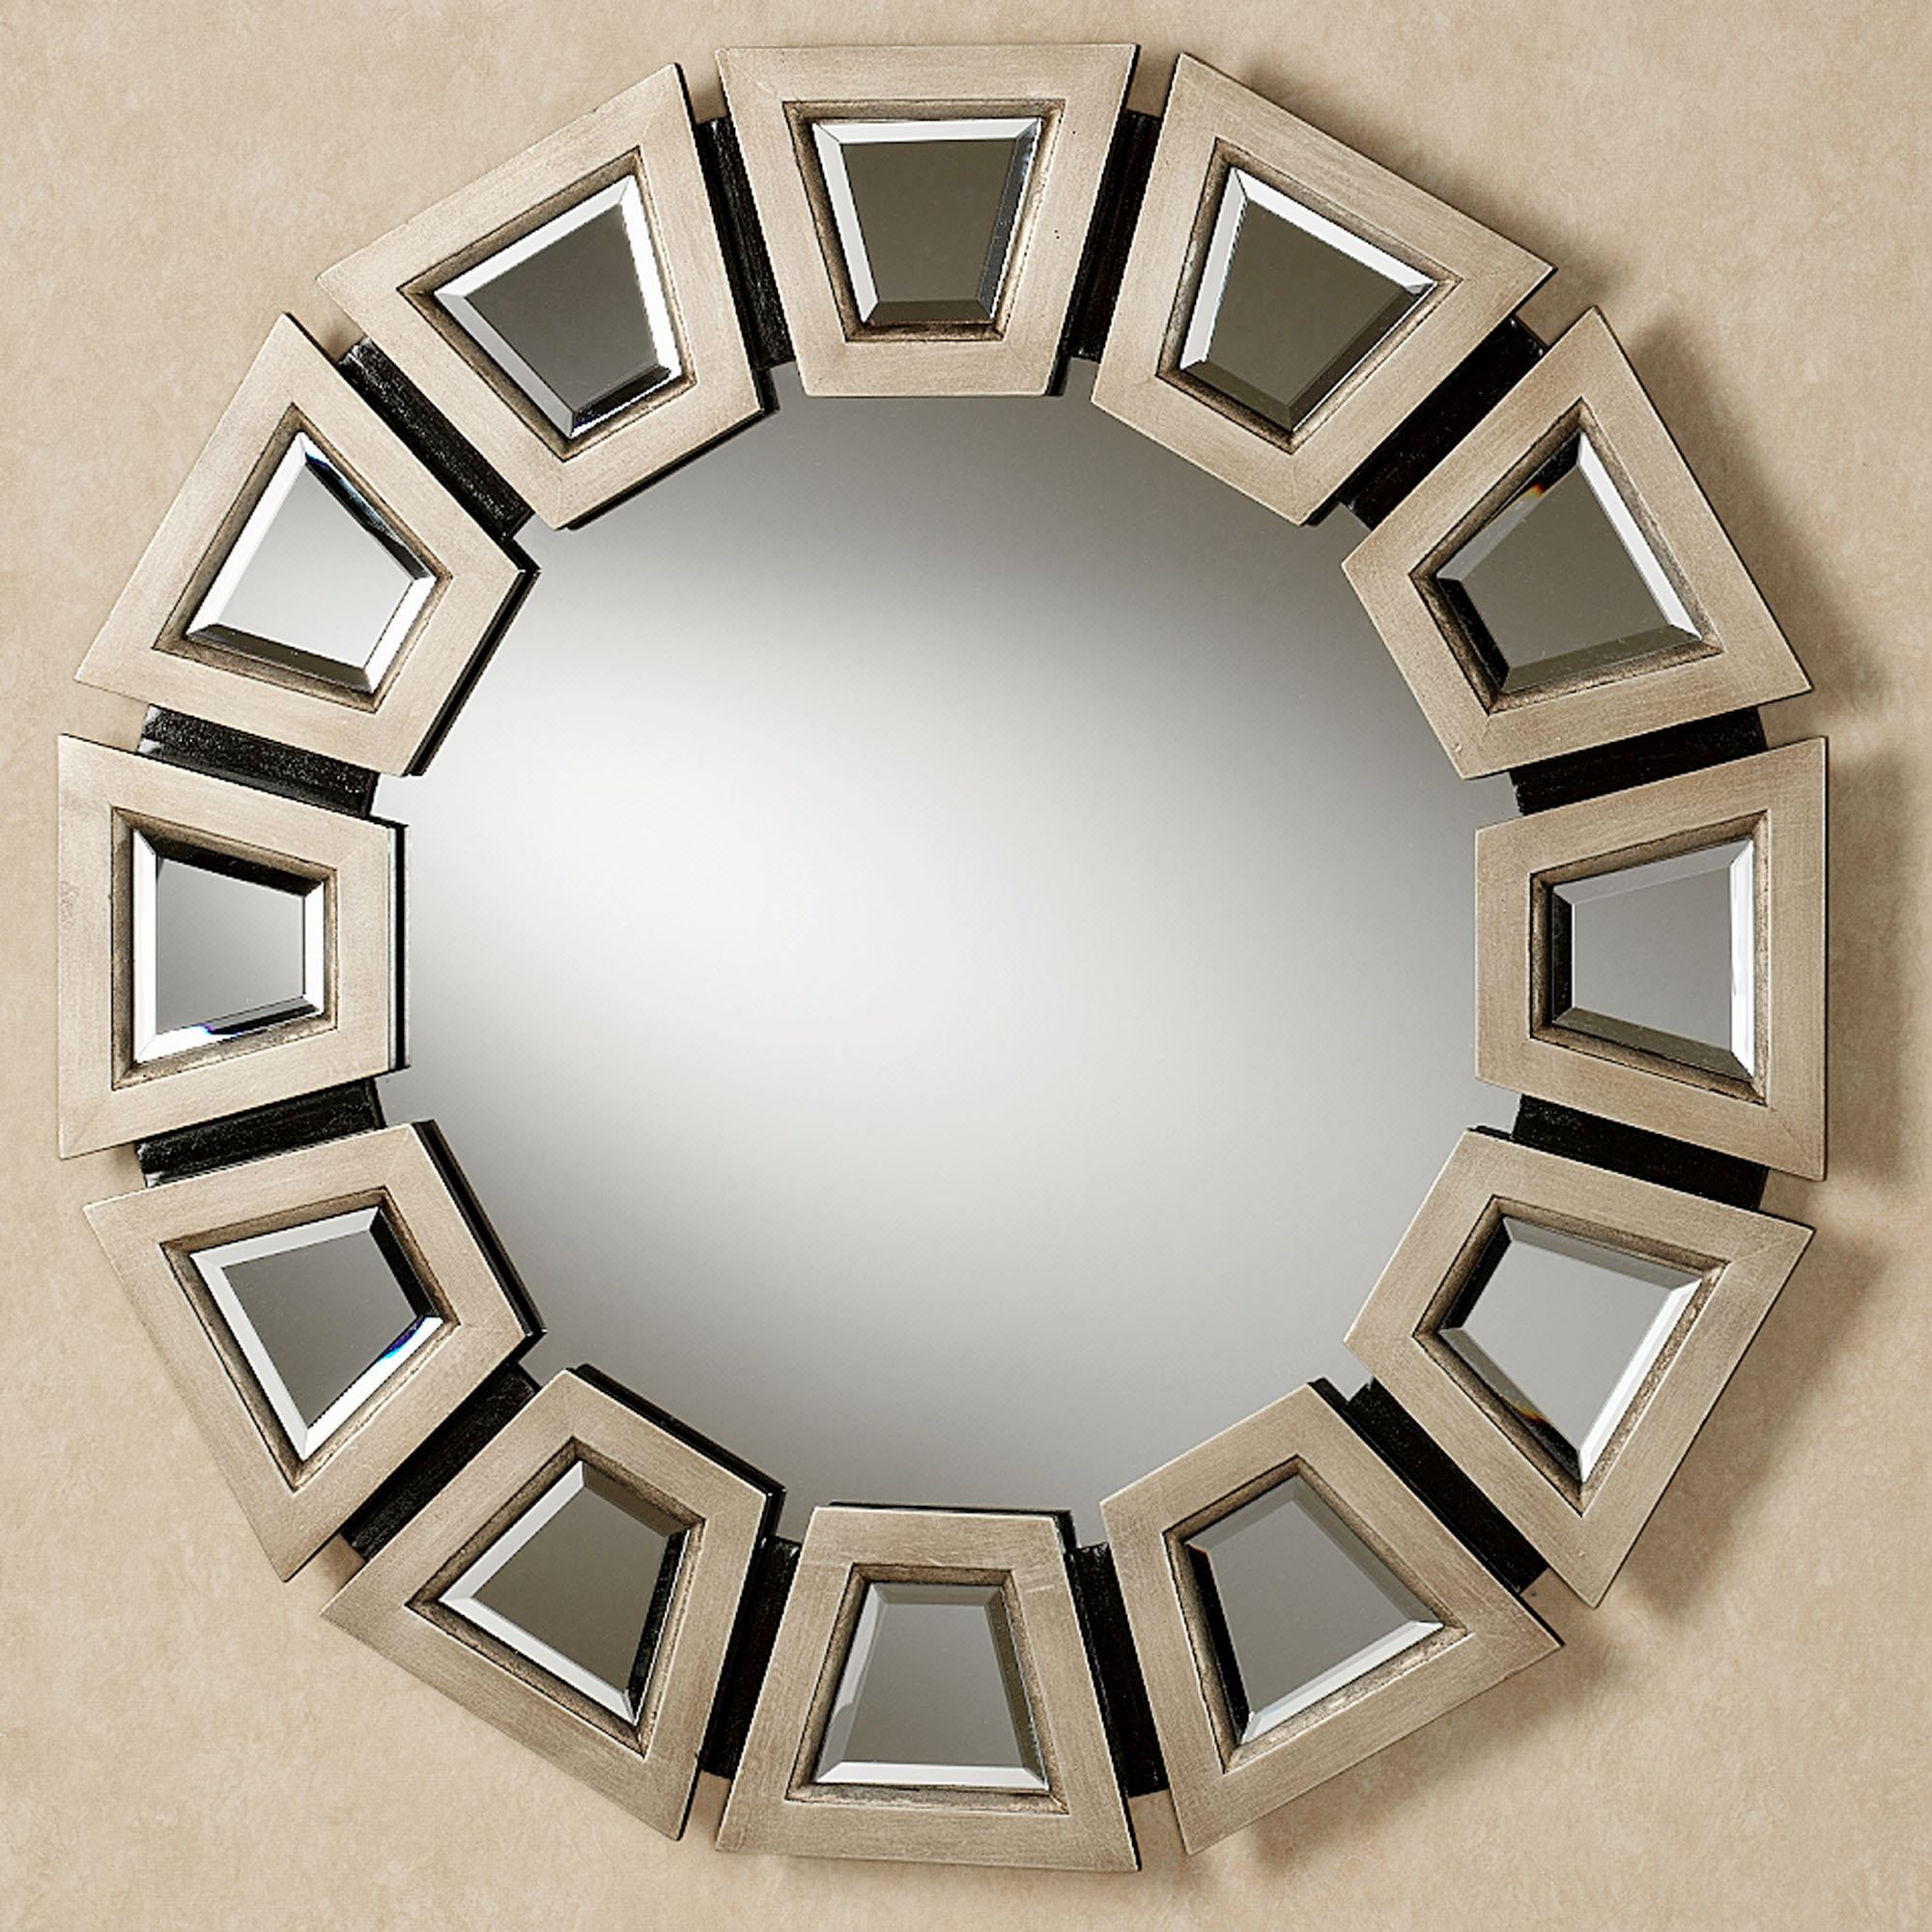 Inexpensive wall mirrors decorative mirror wall simple